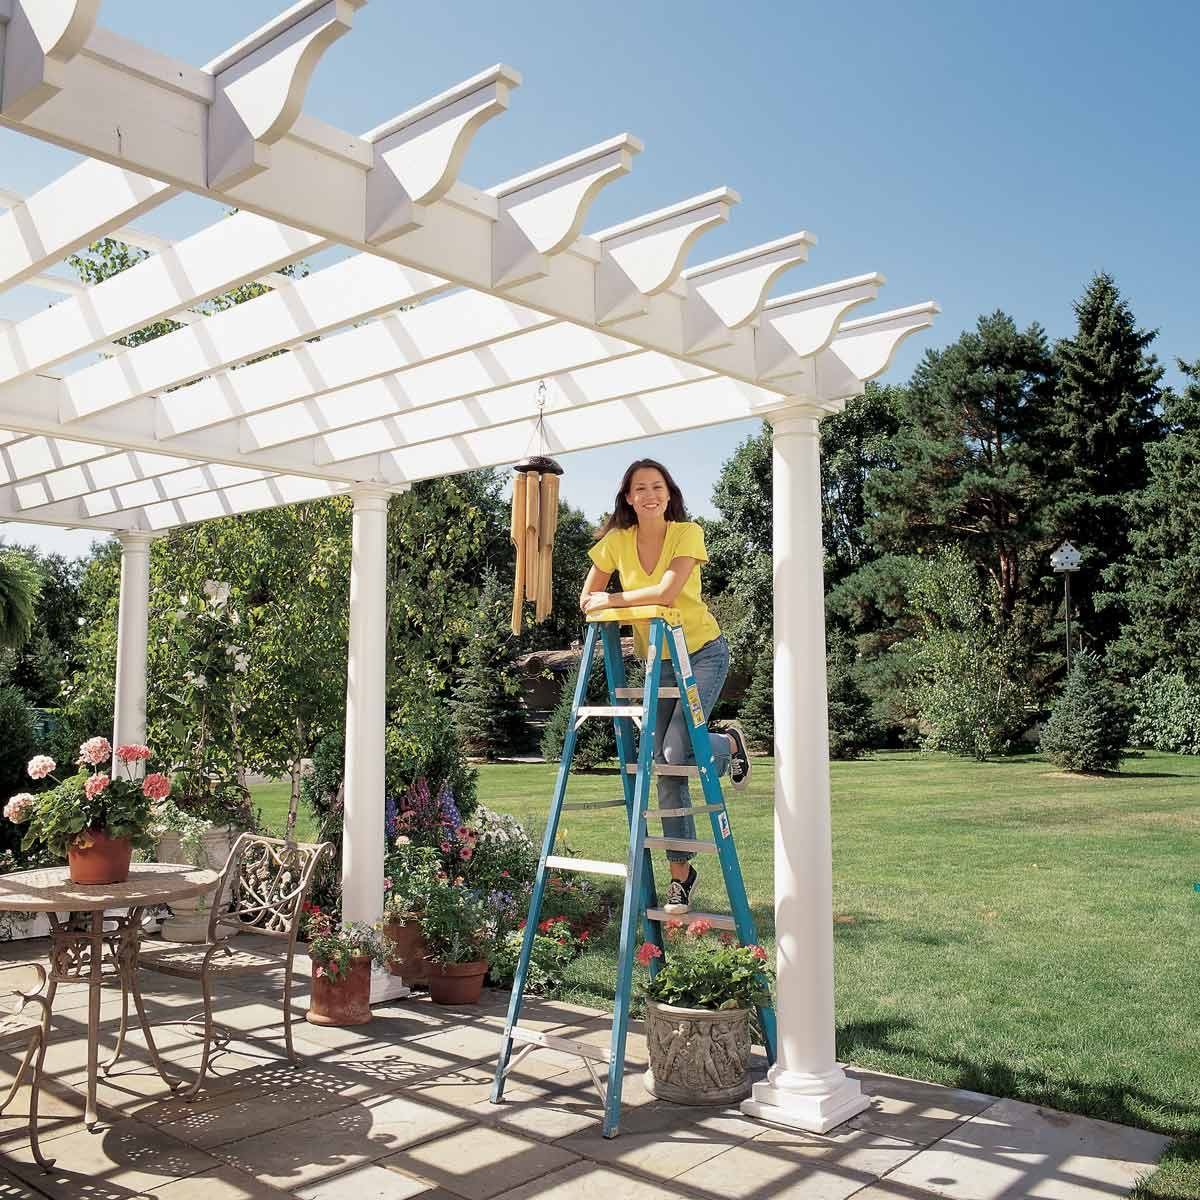 Pergola Design Builders: How To Build A Pergola: Pergola Plans